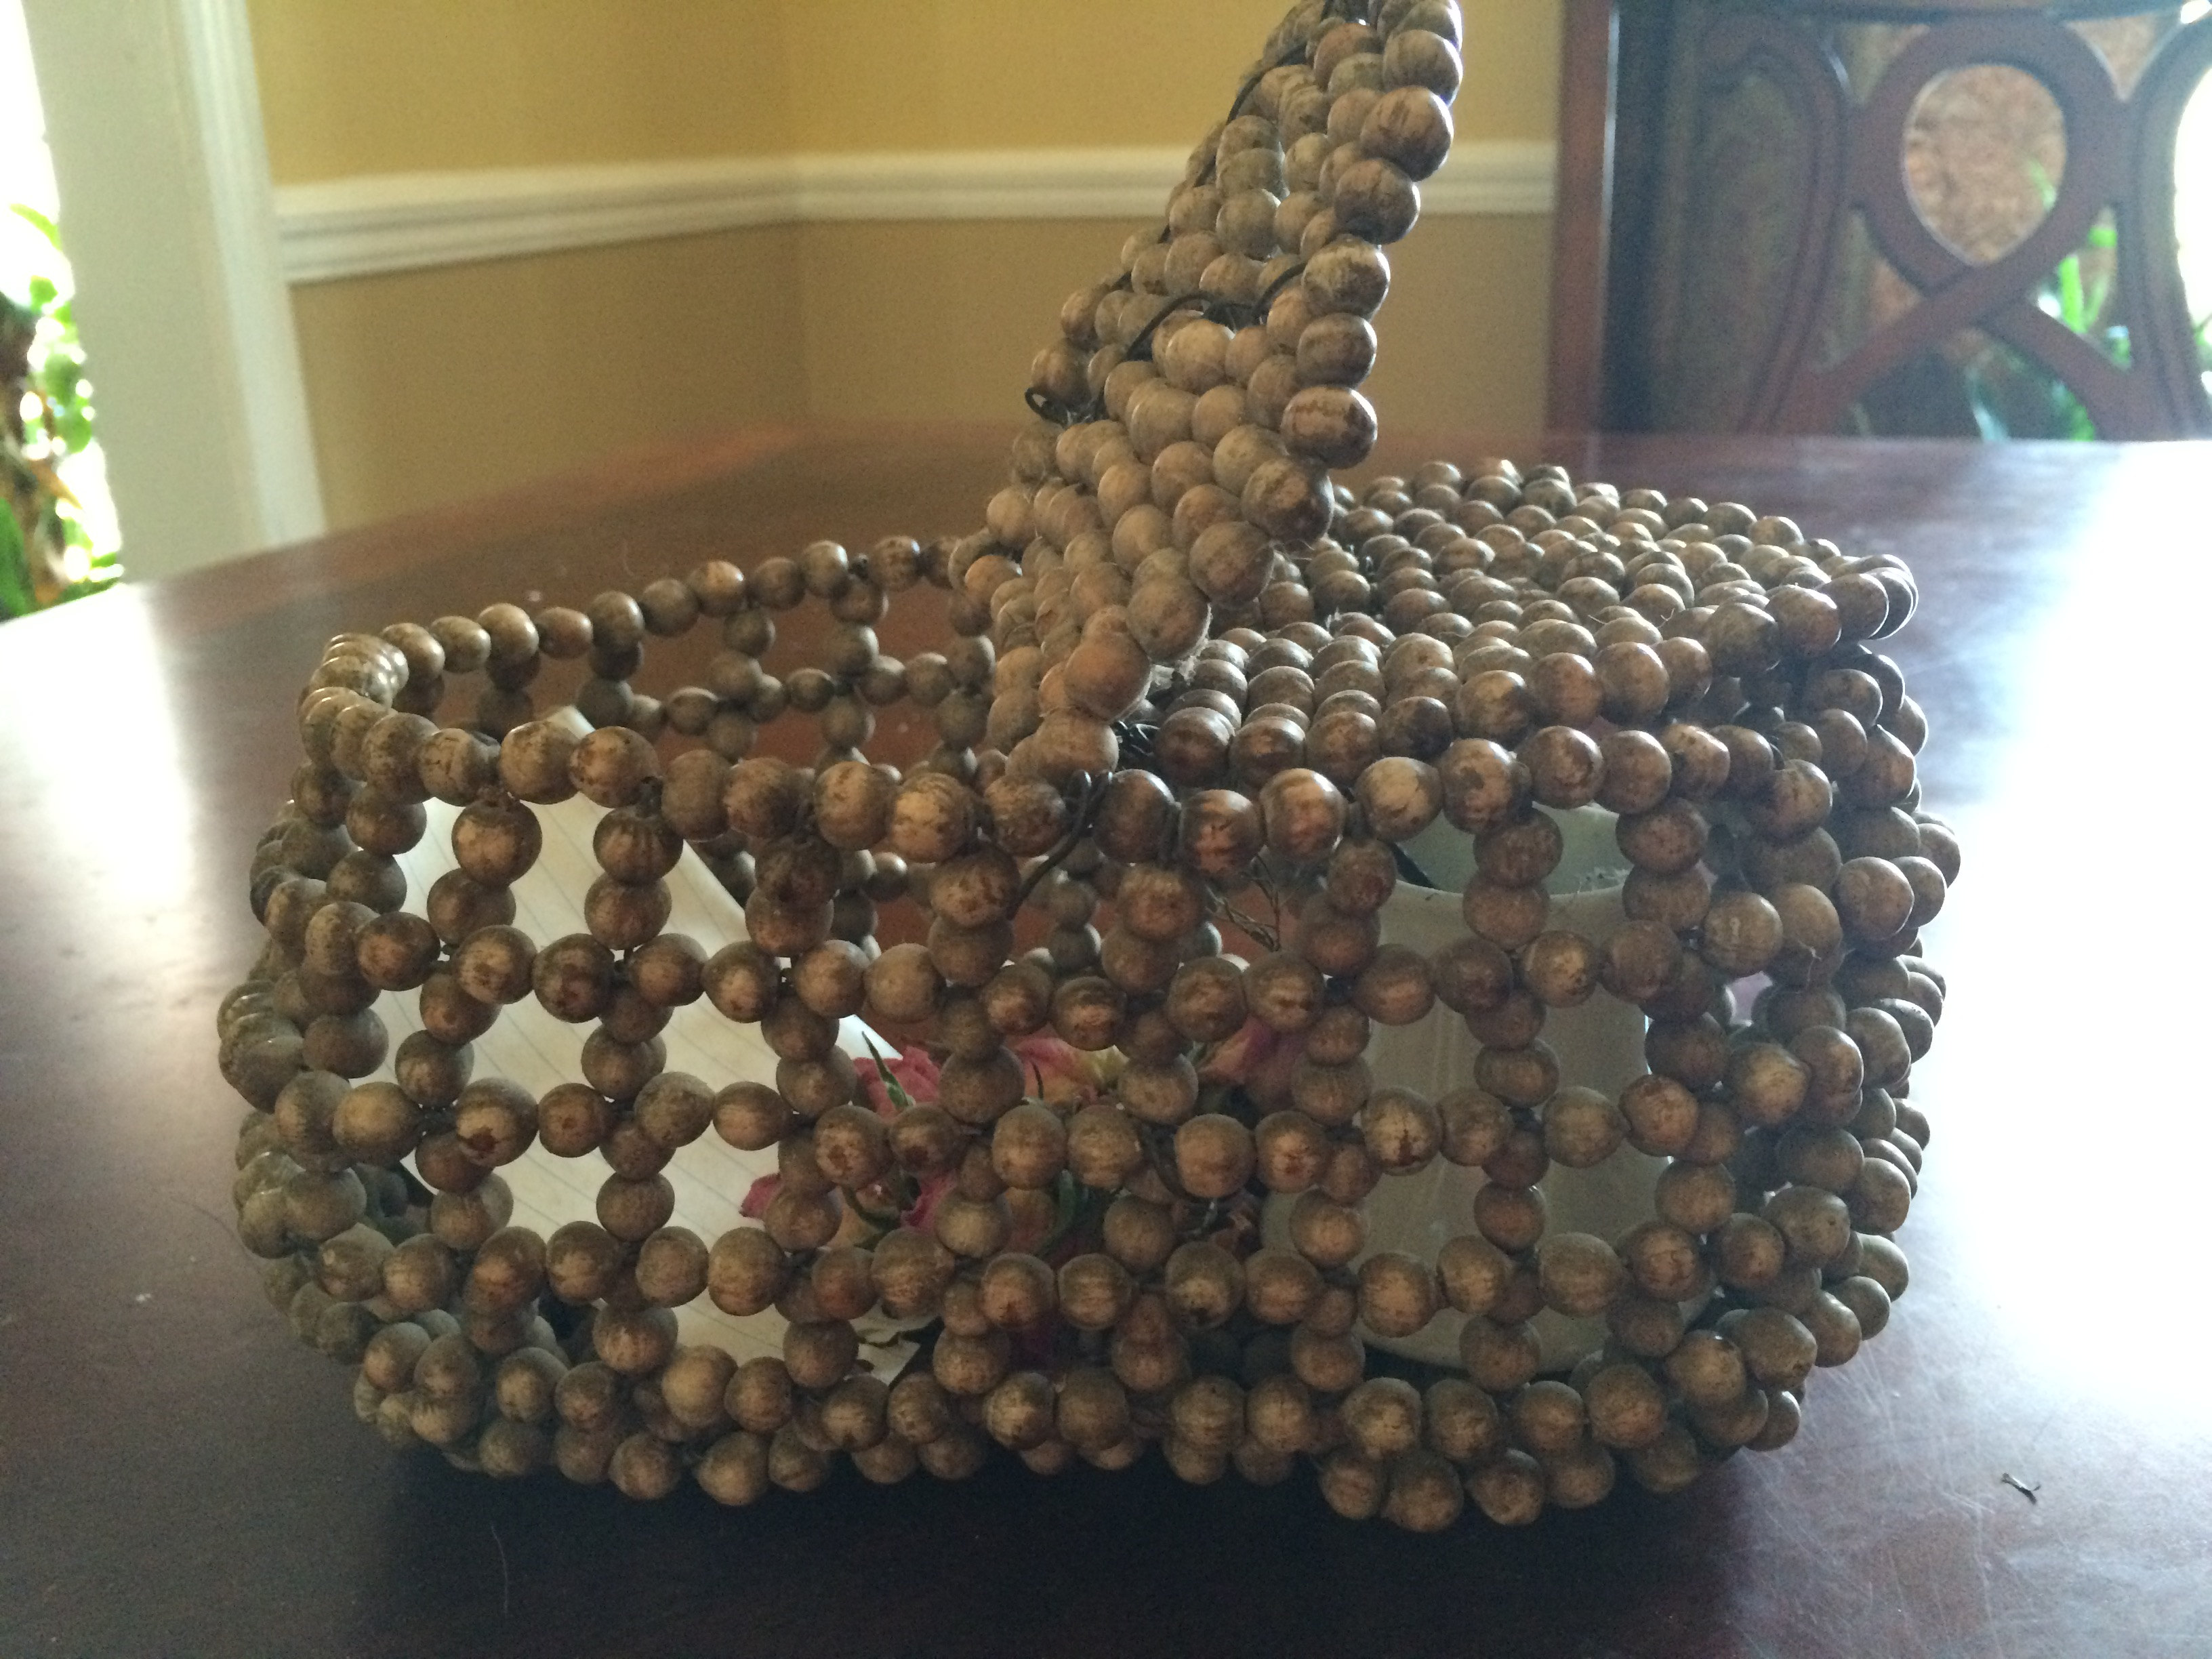 The Mystery Of The Corn Bead Basket